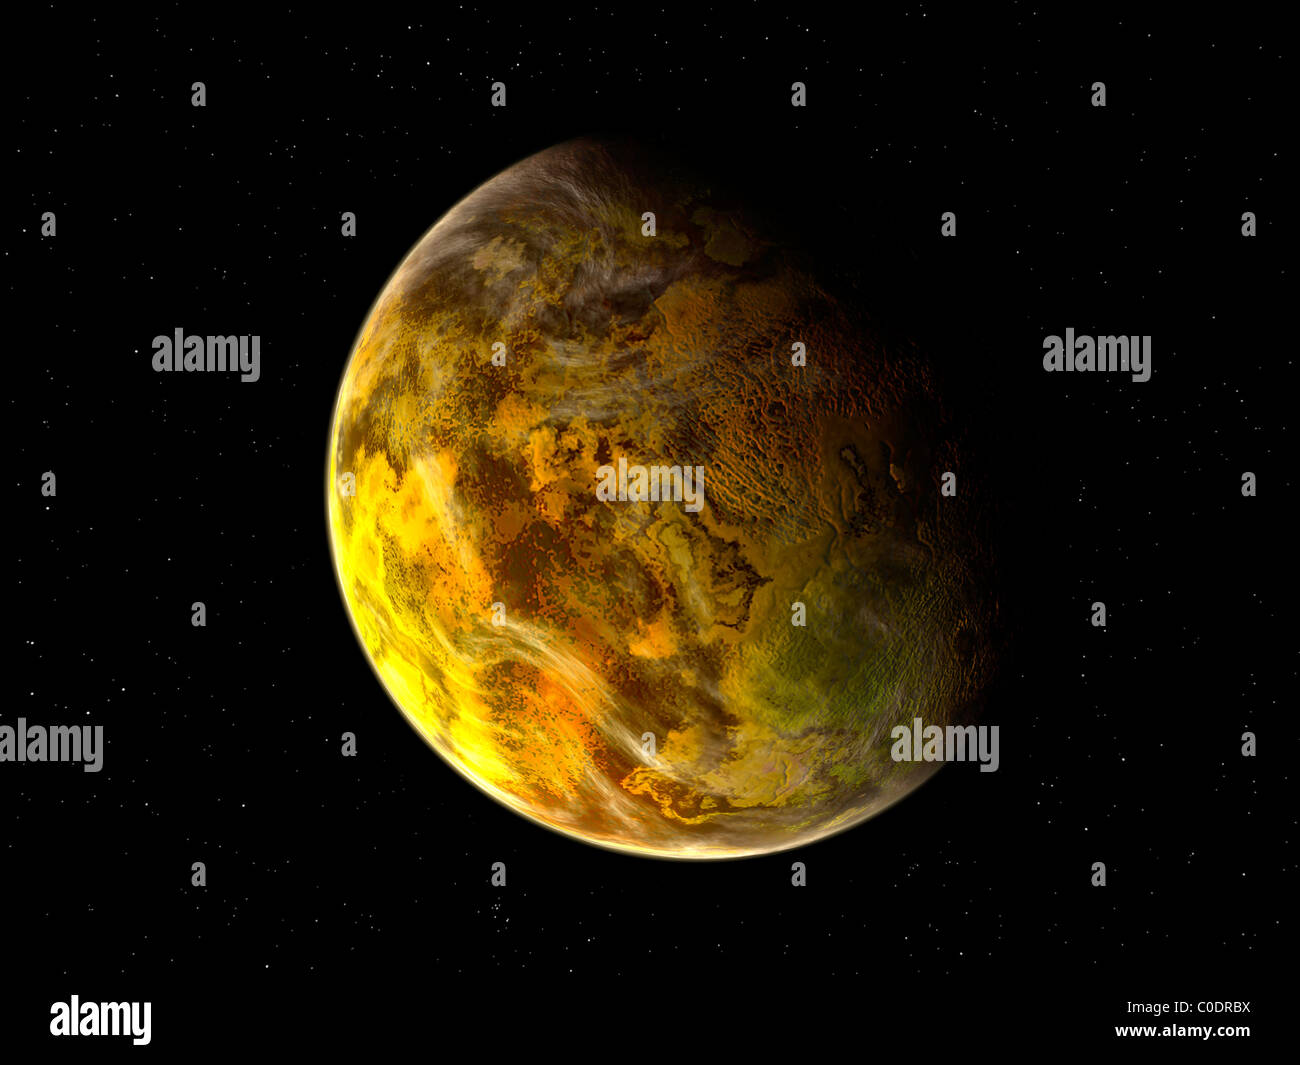 Illustration of a rocky and variegated extrasolar planet, Gliese 581 c. - Stock Image